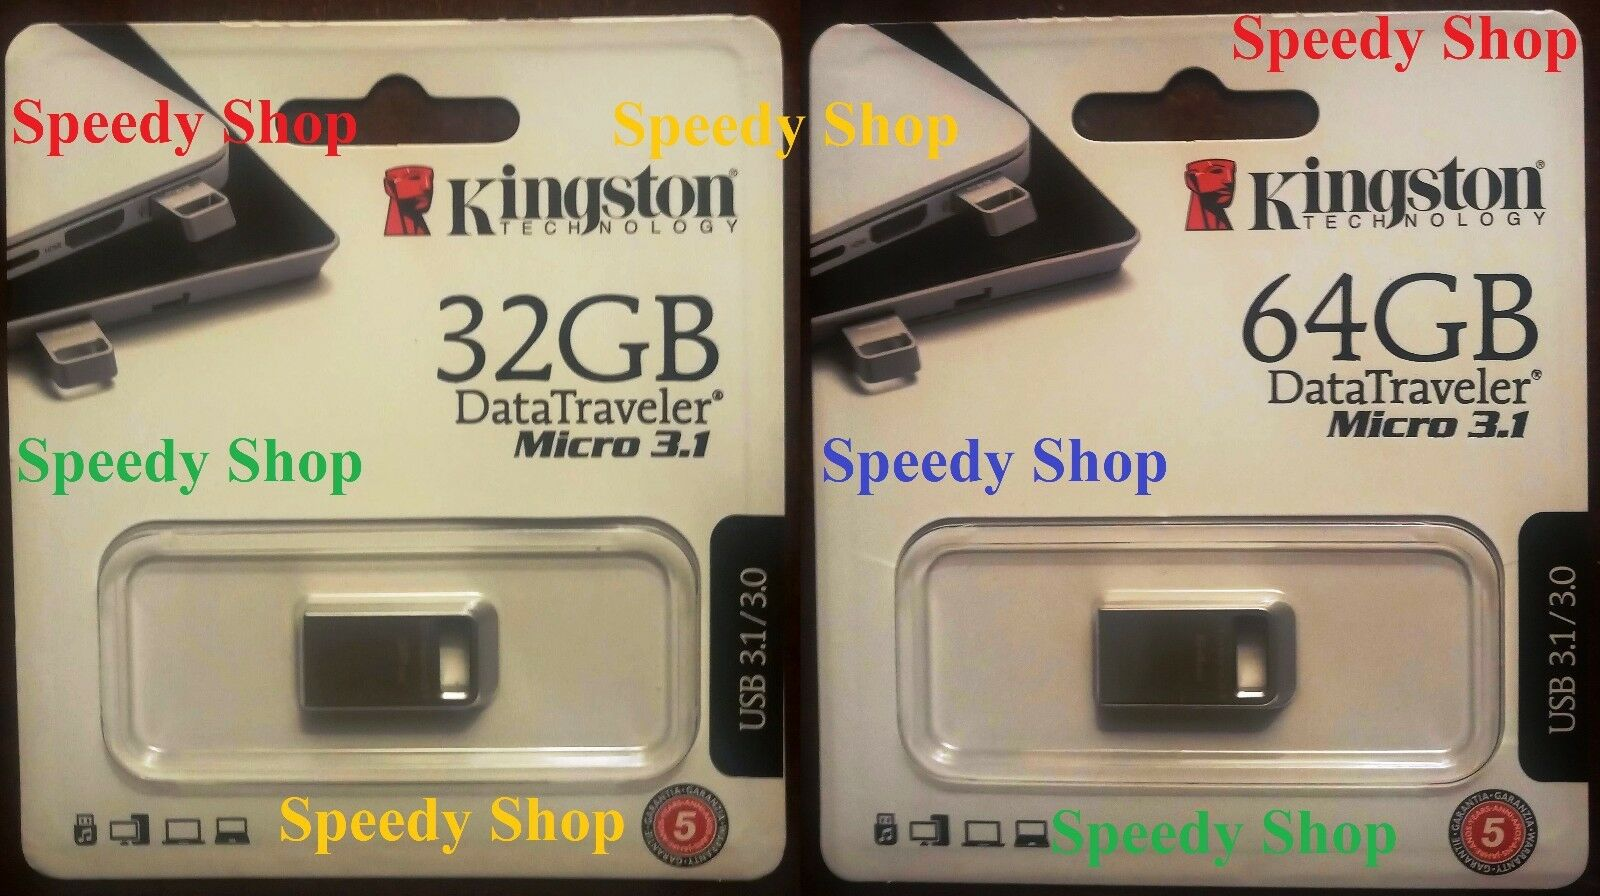 PENDRIVE USB 3.0 KINGSTON CHIAVETTA 8 GB 16 GB 32 GB 64 GB 128 GB MEMORIA DTIG4